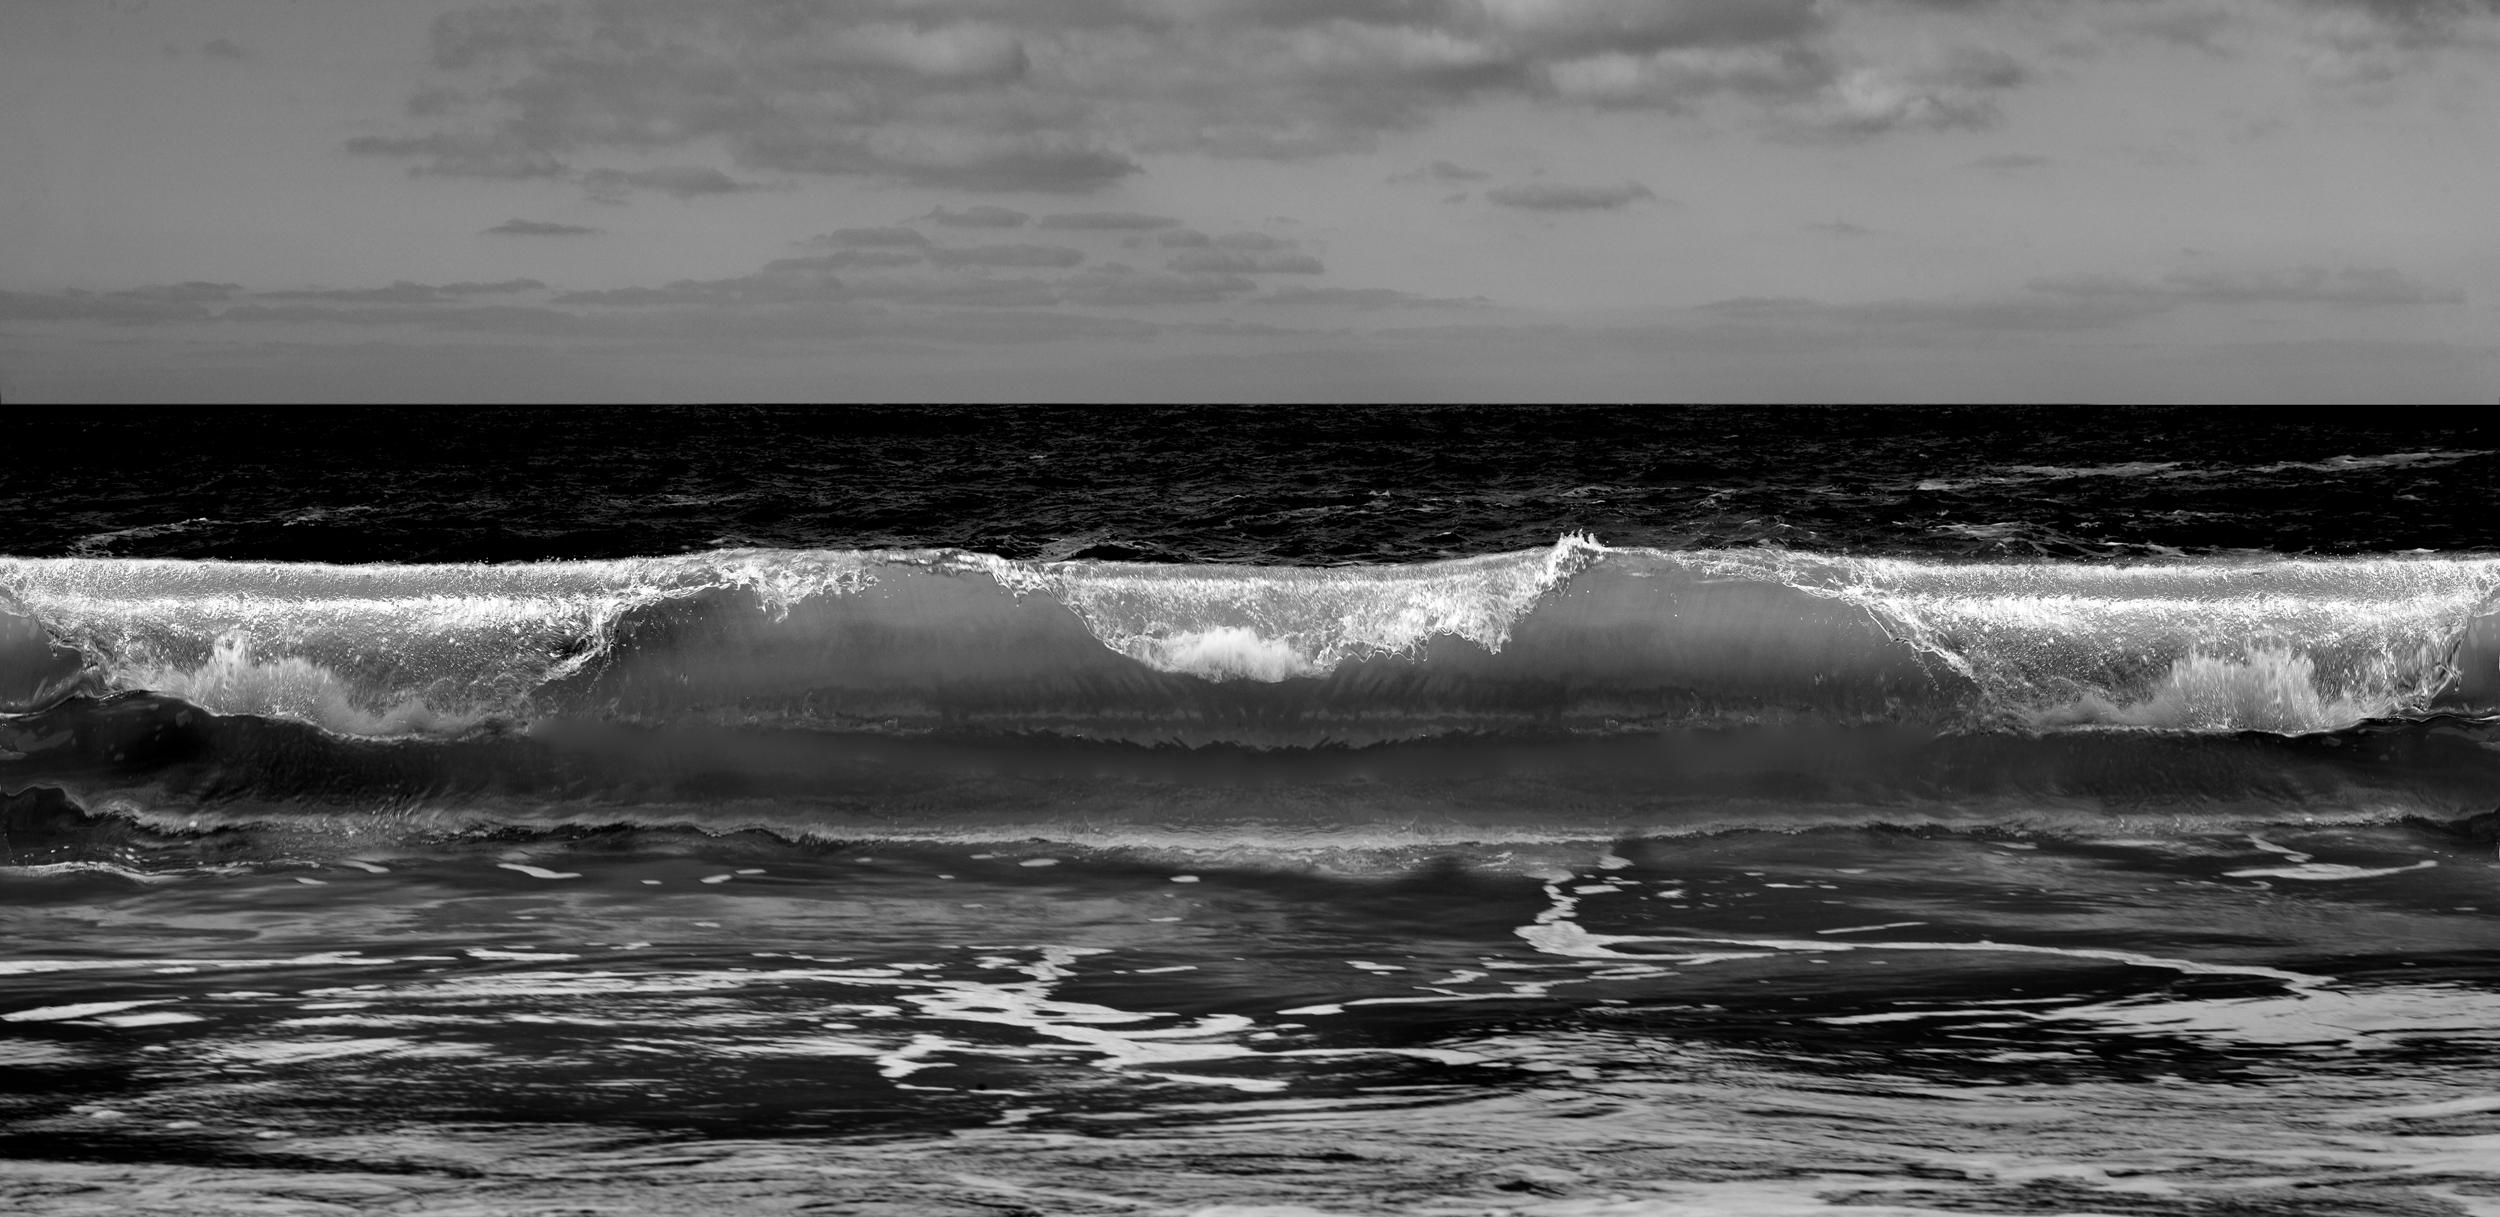 Wave - Signed limited edition print by Ian Sanderson Black and white photography